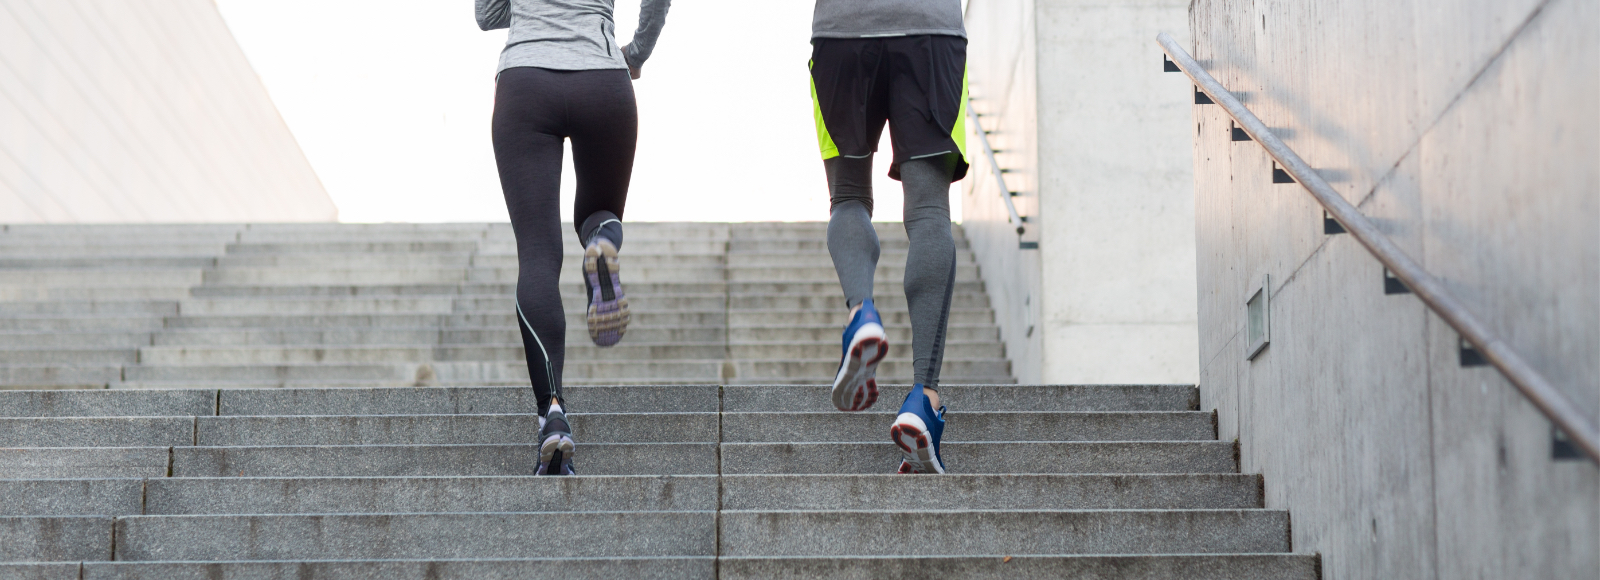 A man and woman in athletic wear run up stairs side by side while using Sof Sole® support insoles.